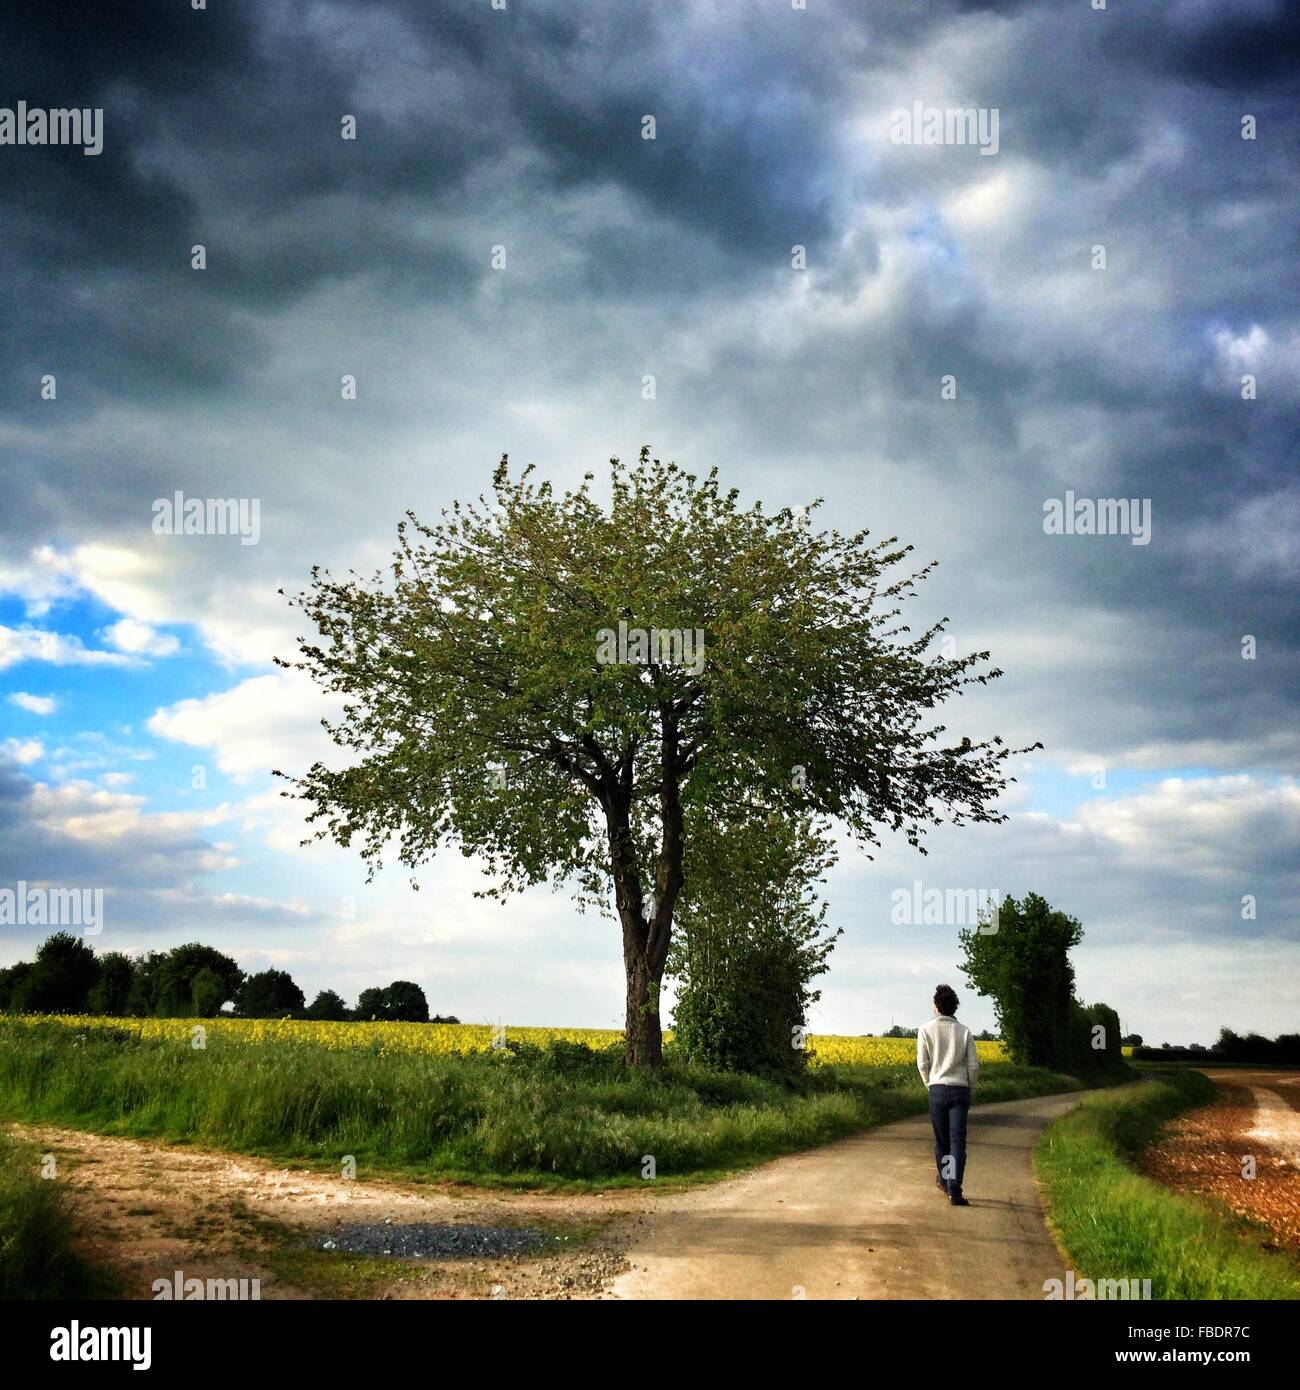 Rear View Of Man Walking On Dirt Road In Cultivated Field - Stock Image